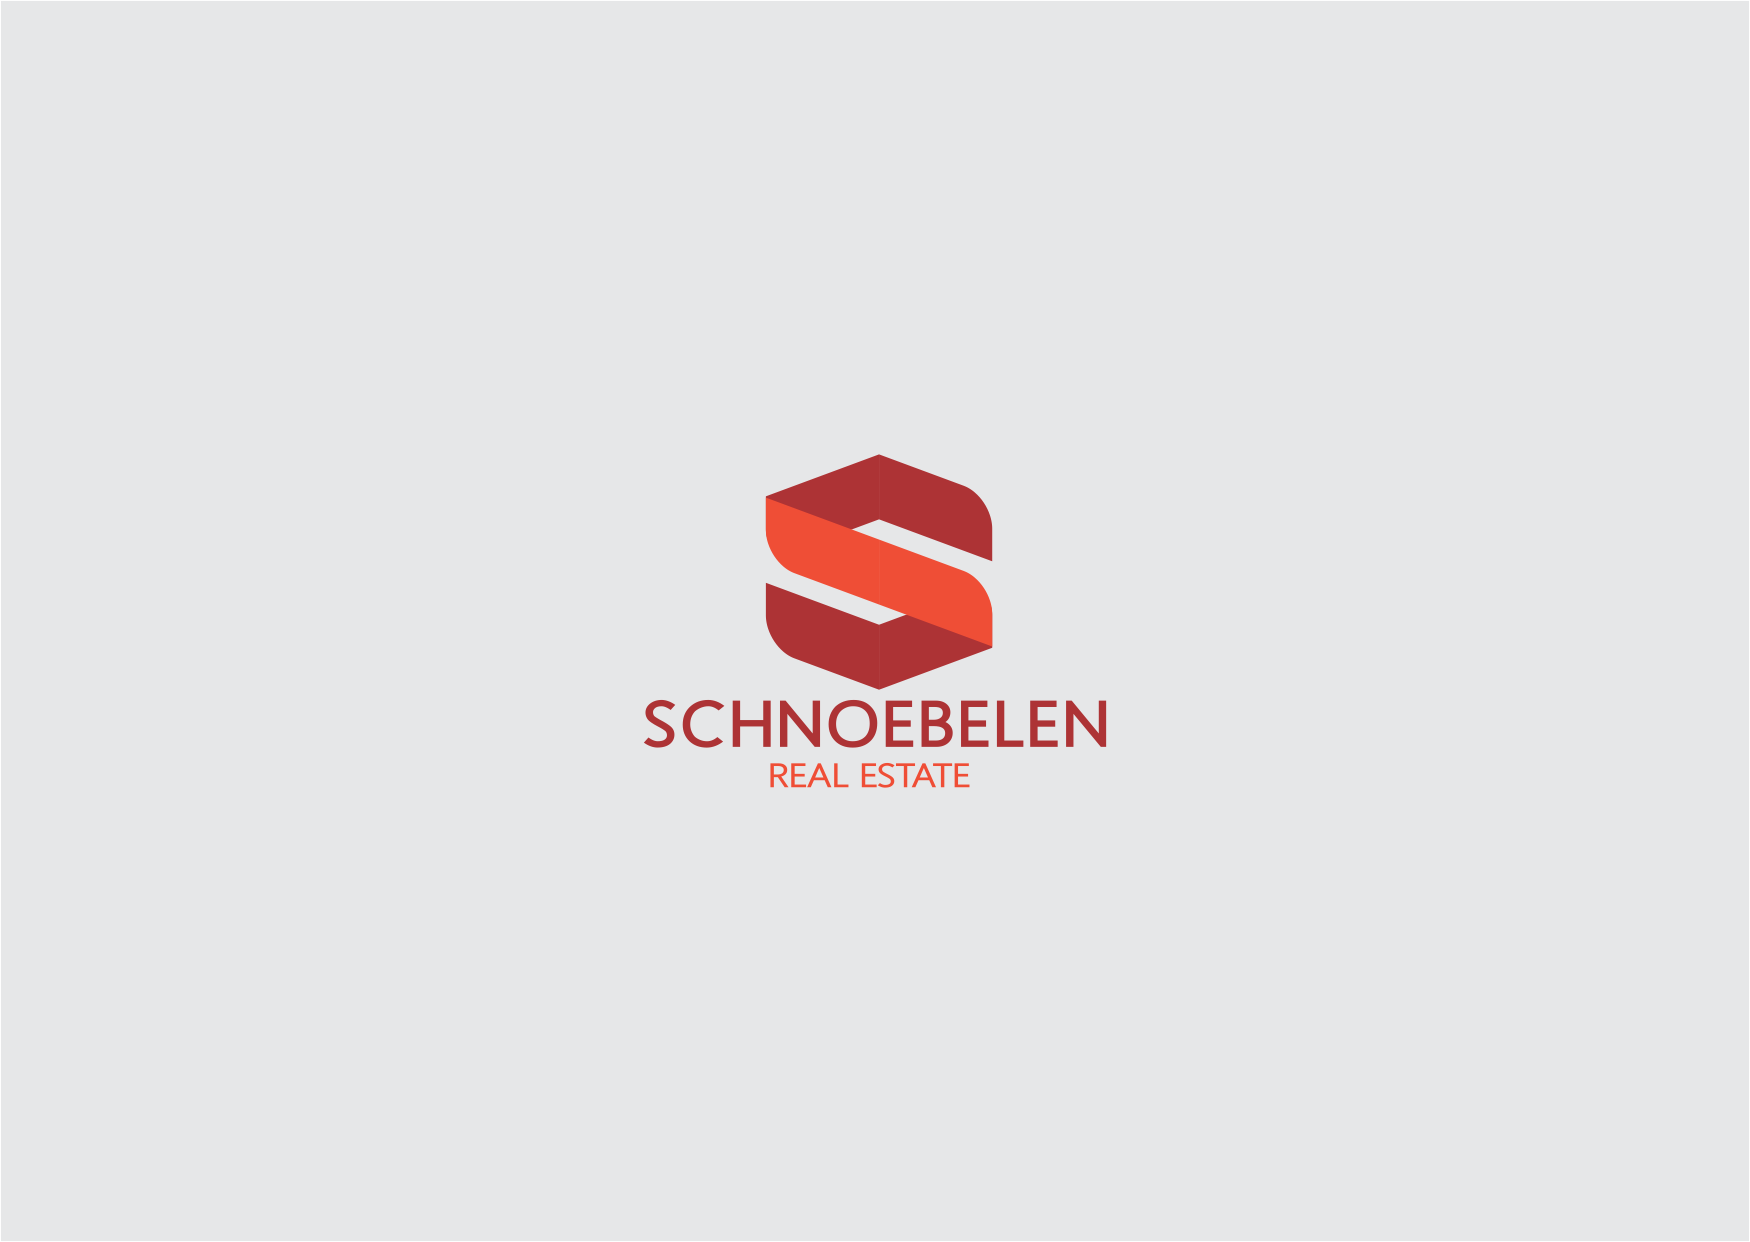 create 3 professional logo designs for your business